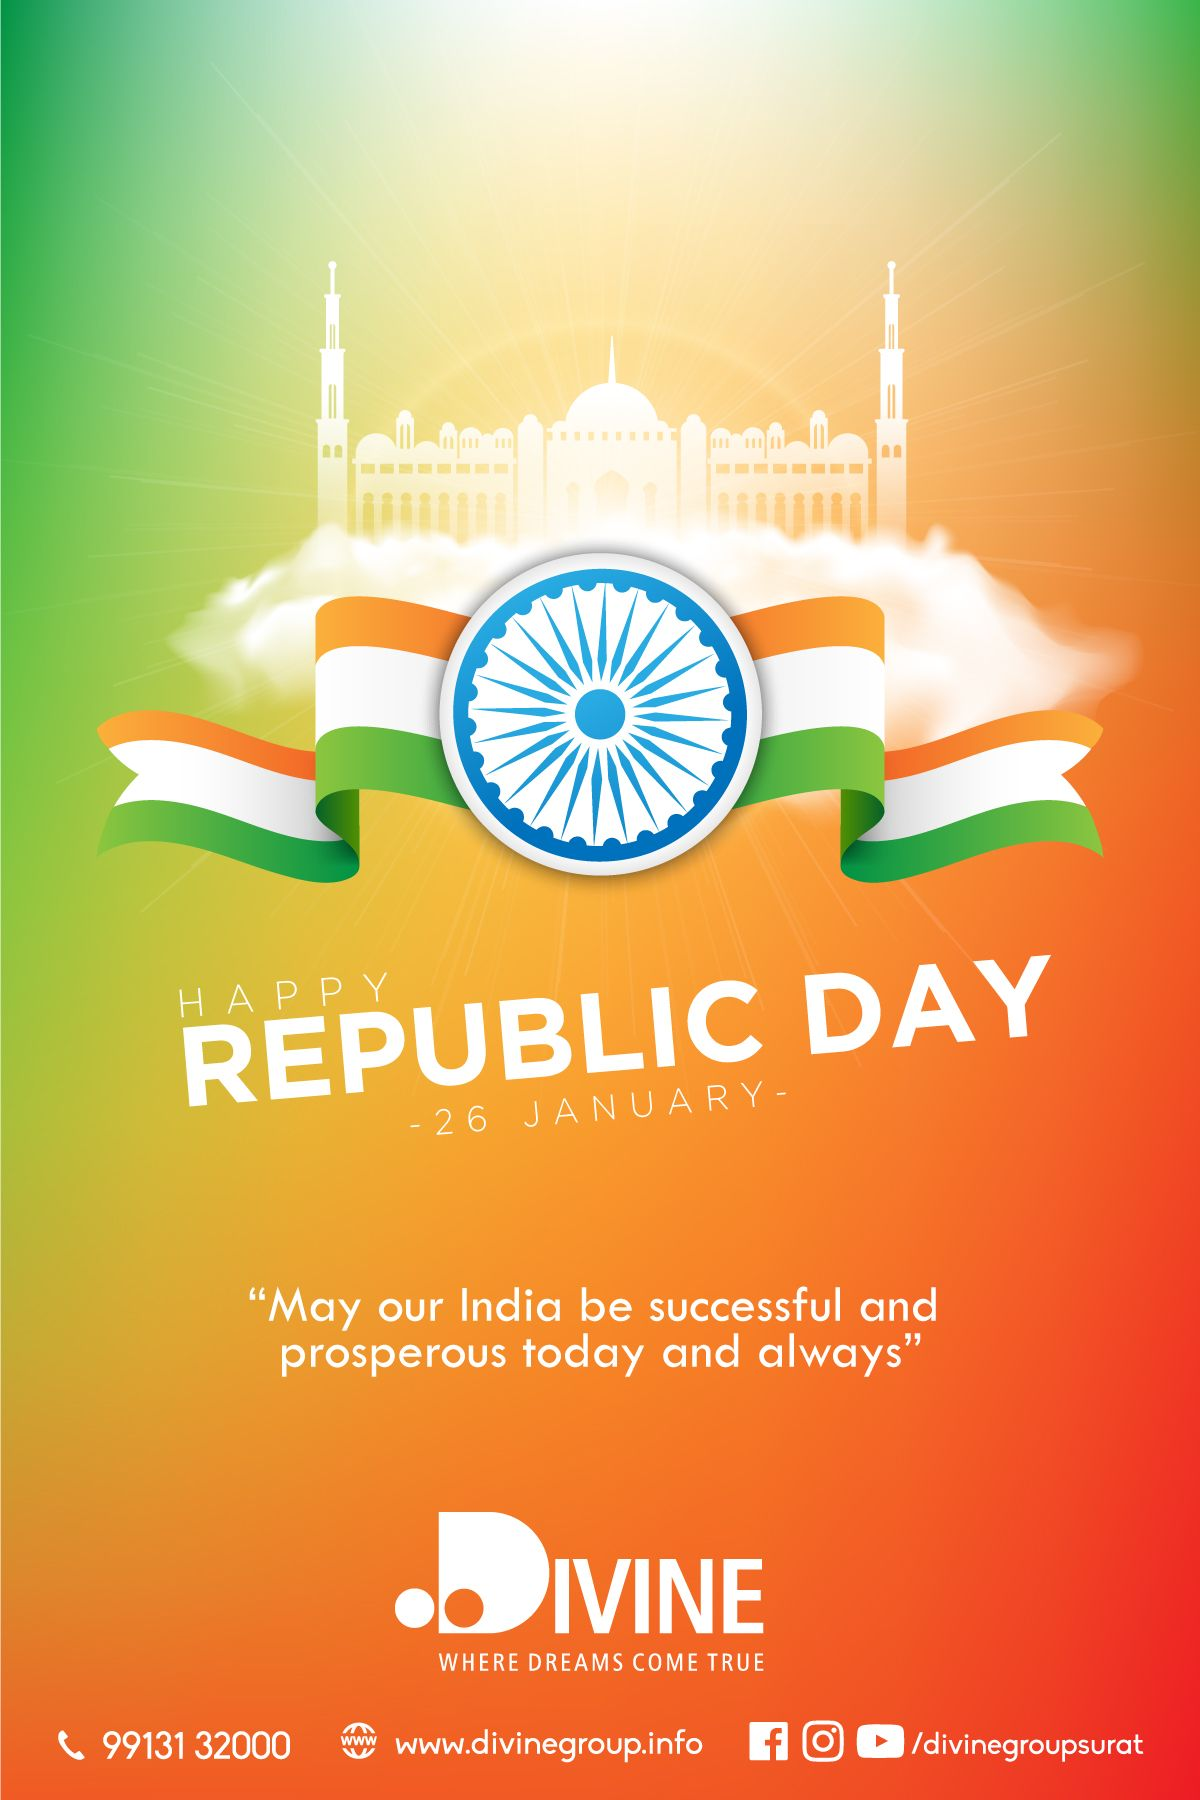 May our India be successful and prosperous today and